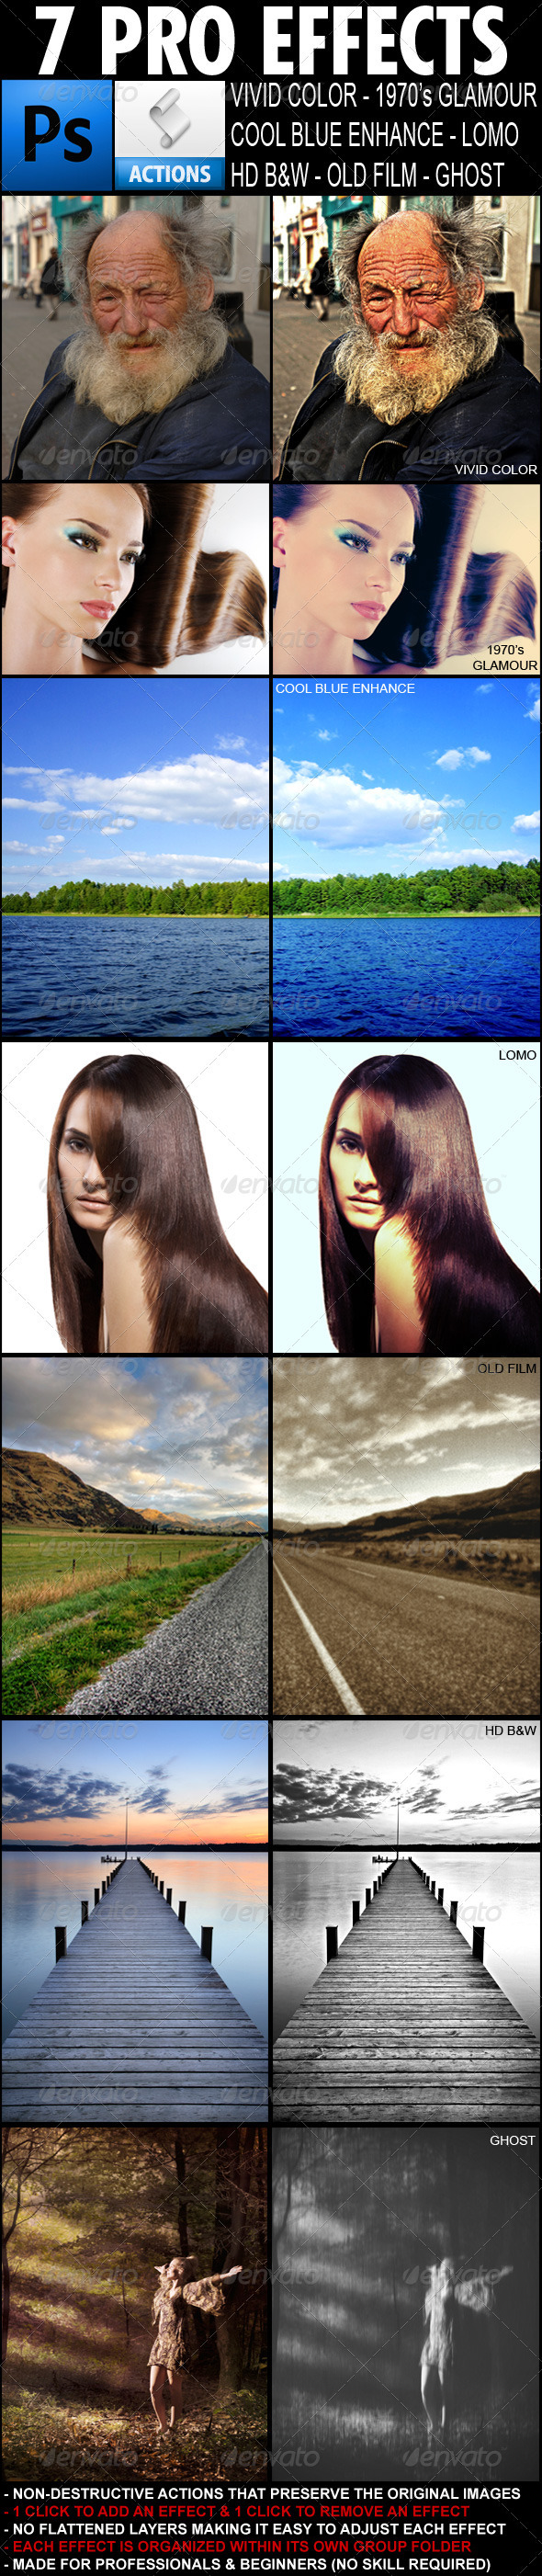 7 Pro Photo Effects - Photo Effects Actions